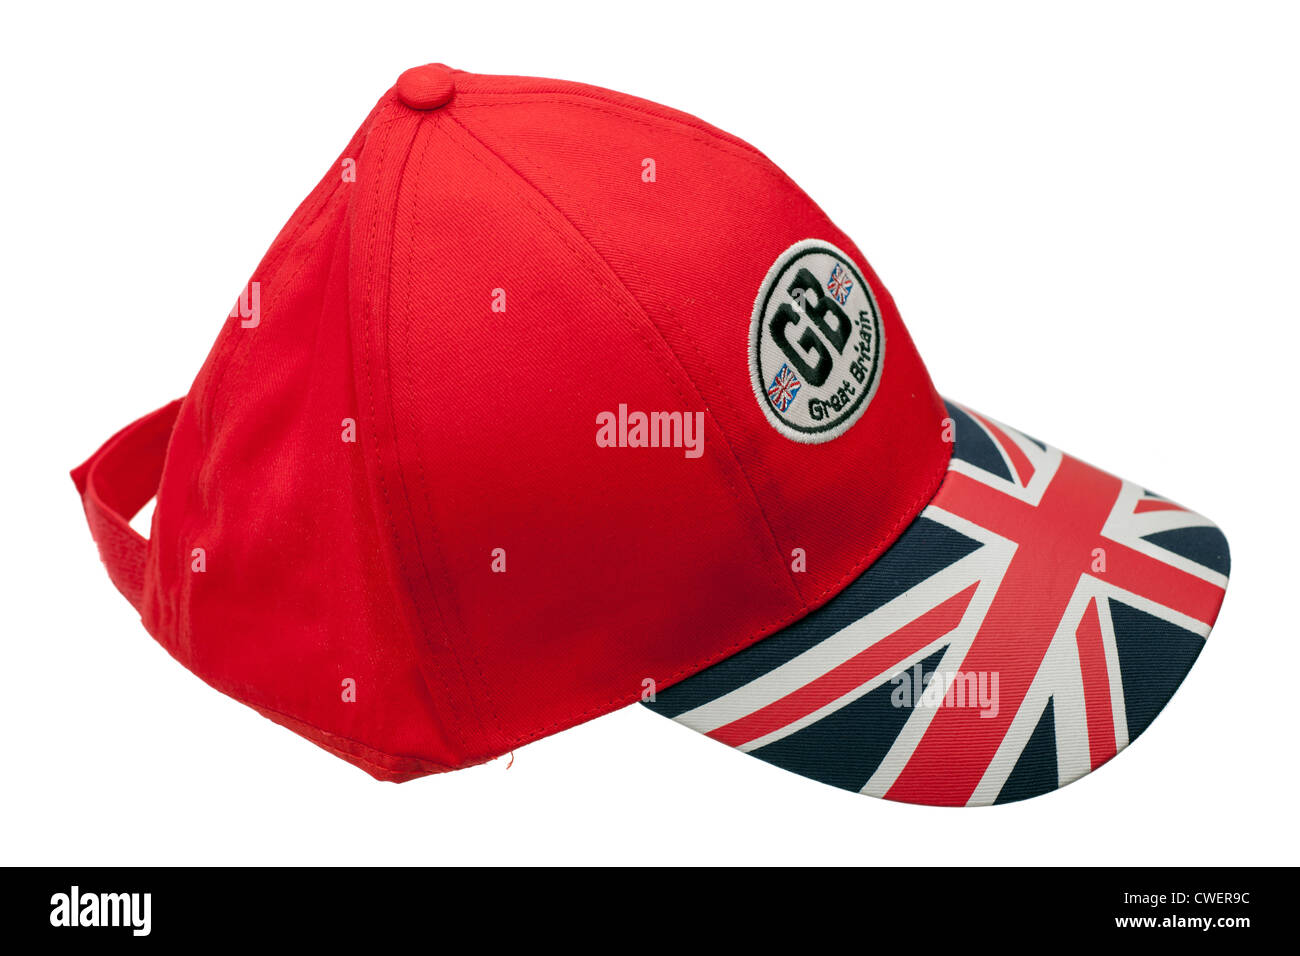 26176f84ef536 Red GB Great Britain Union Jack baseball cap - Stock Image